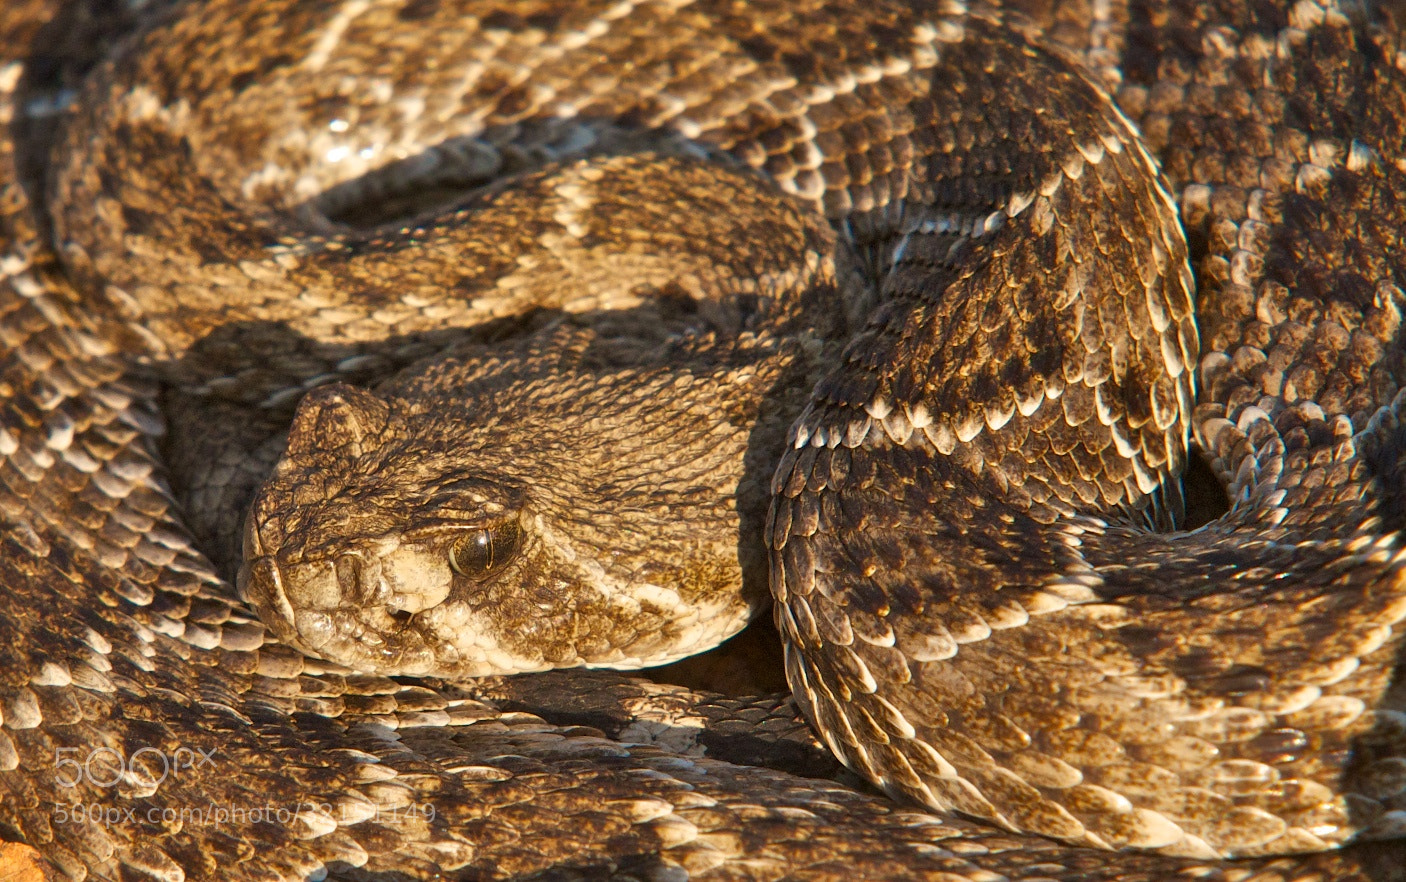 Photograph Another Rattler by Mike Fuhr on 500px